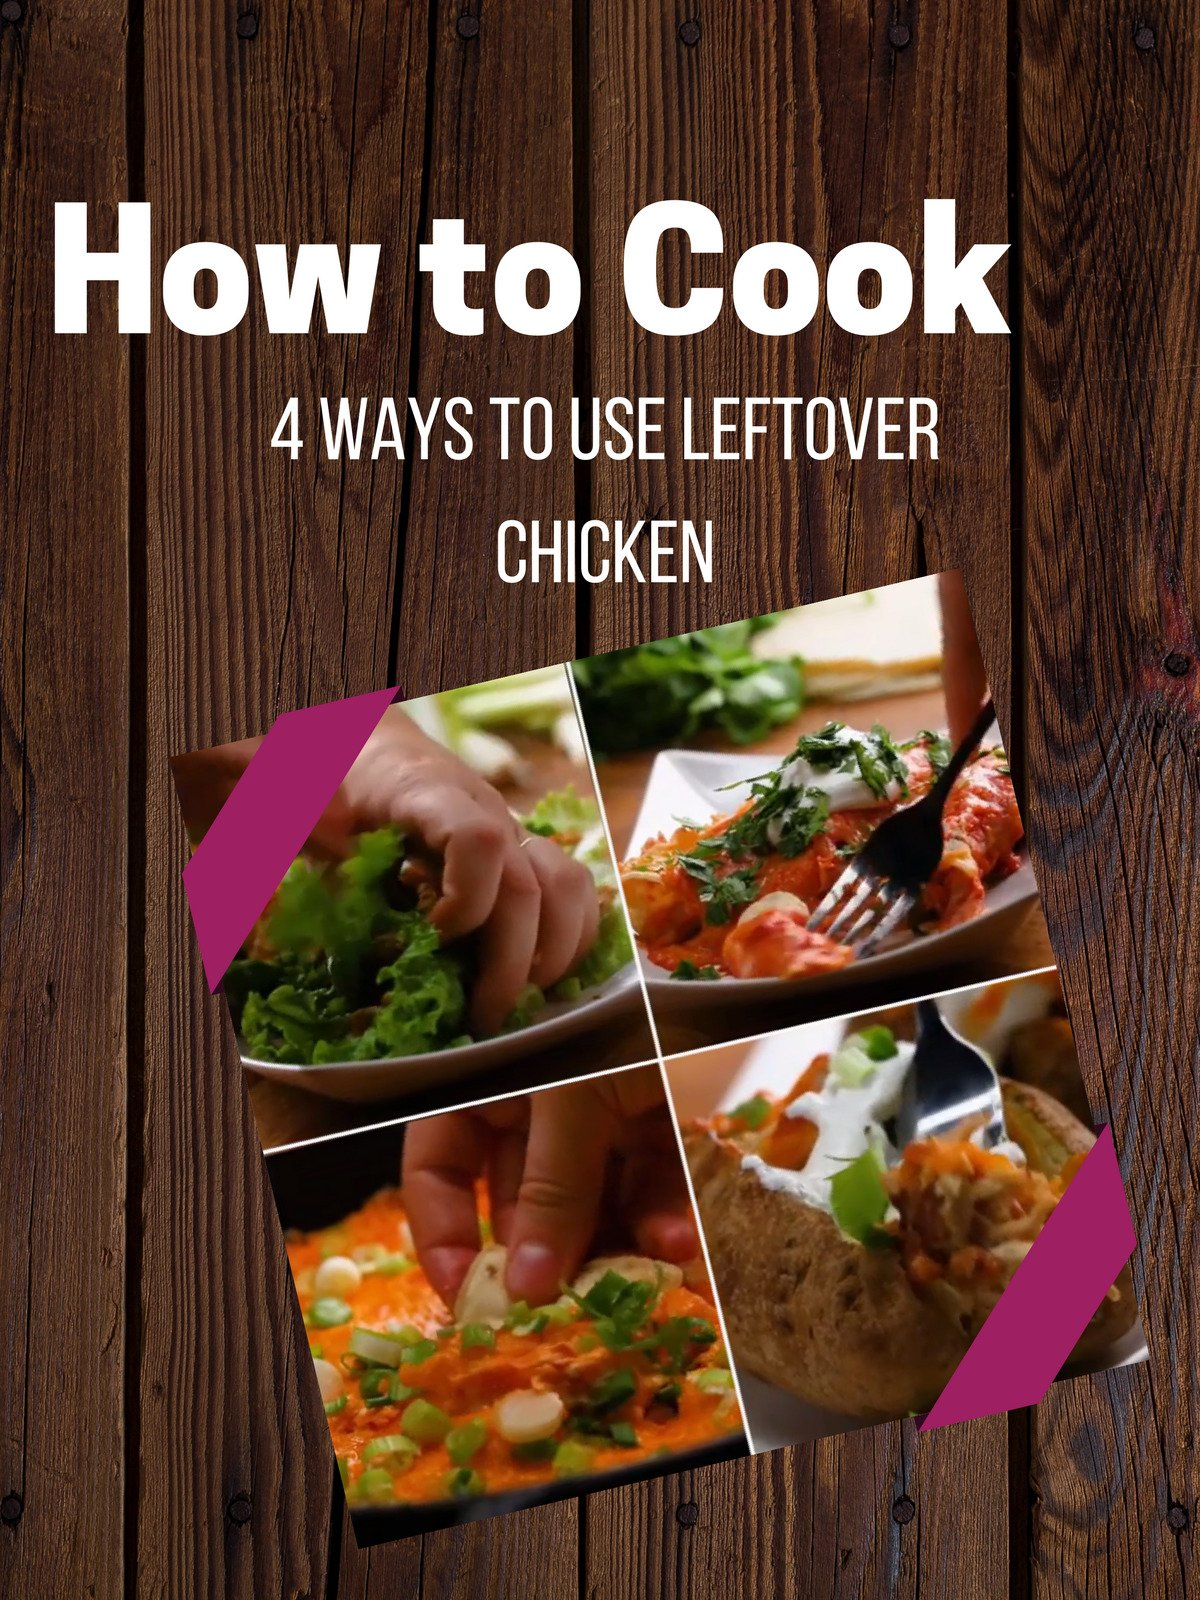 4 Ways To Use Leftover Chicken